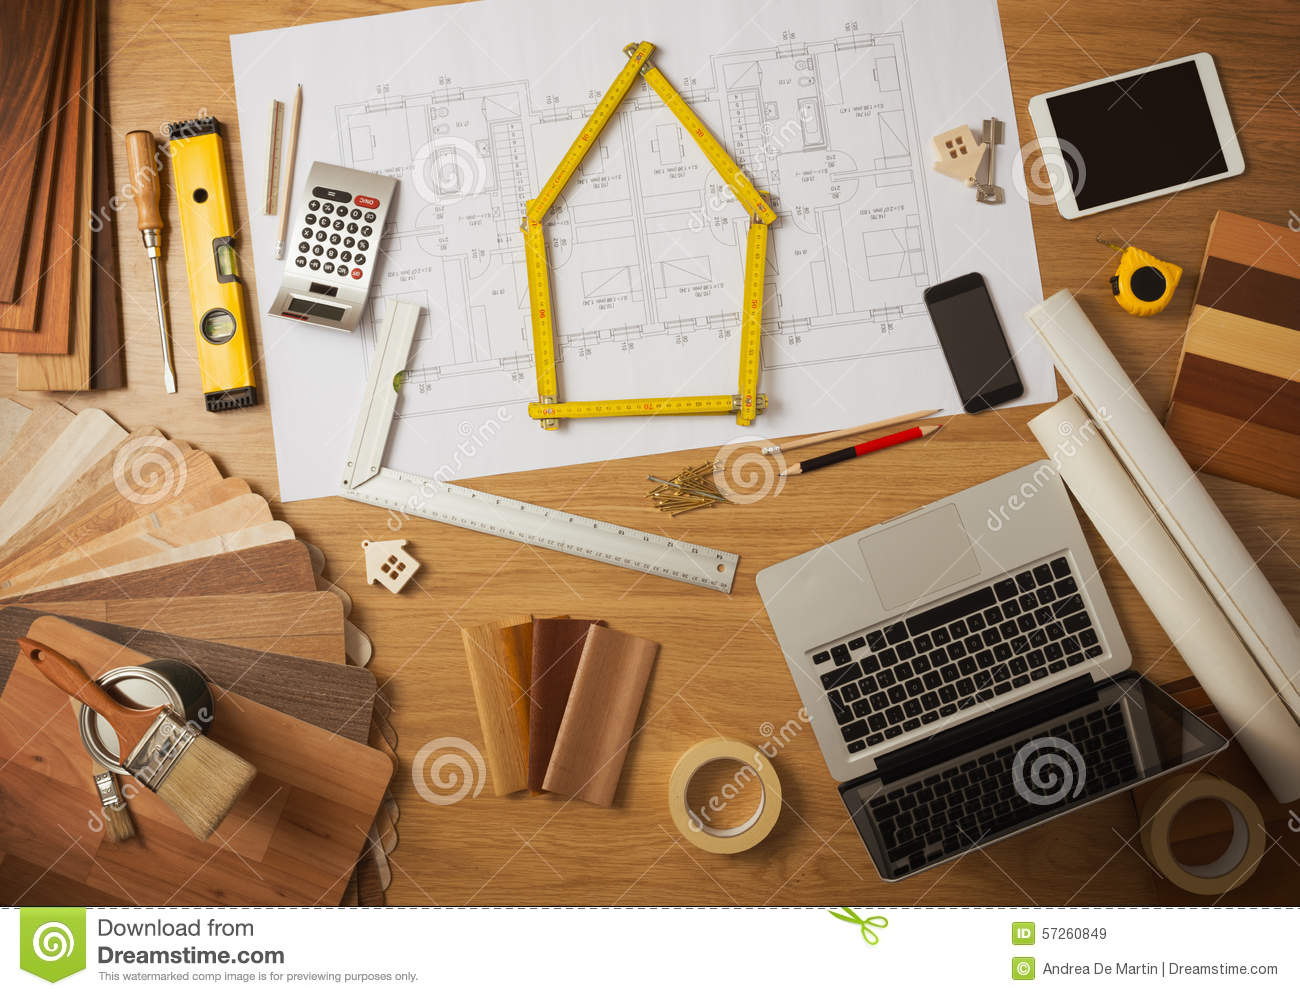 Architect and interior designer work table stock image for Interior design tools